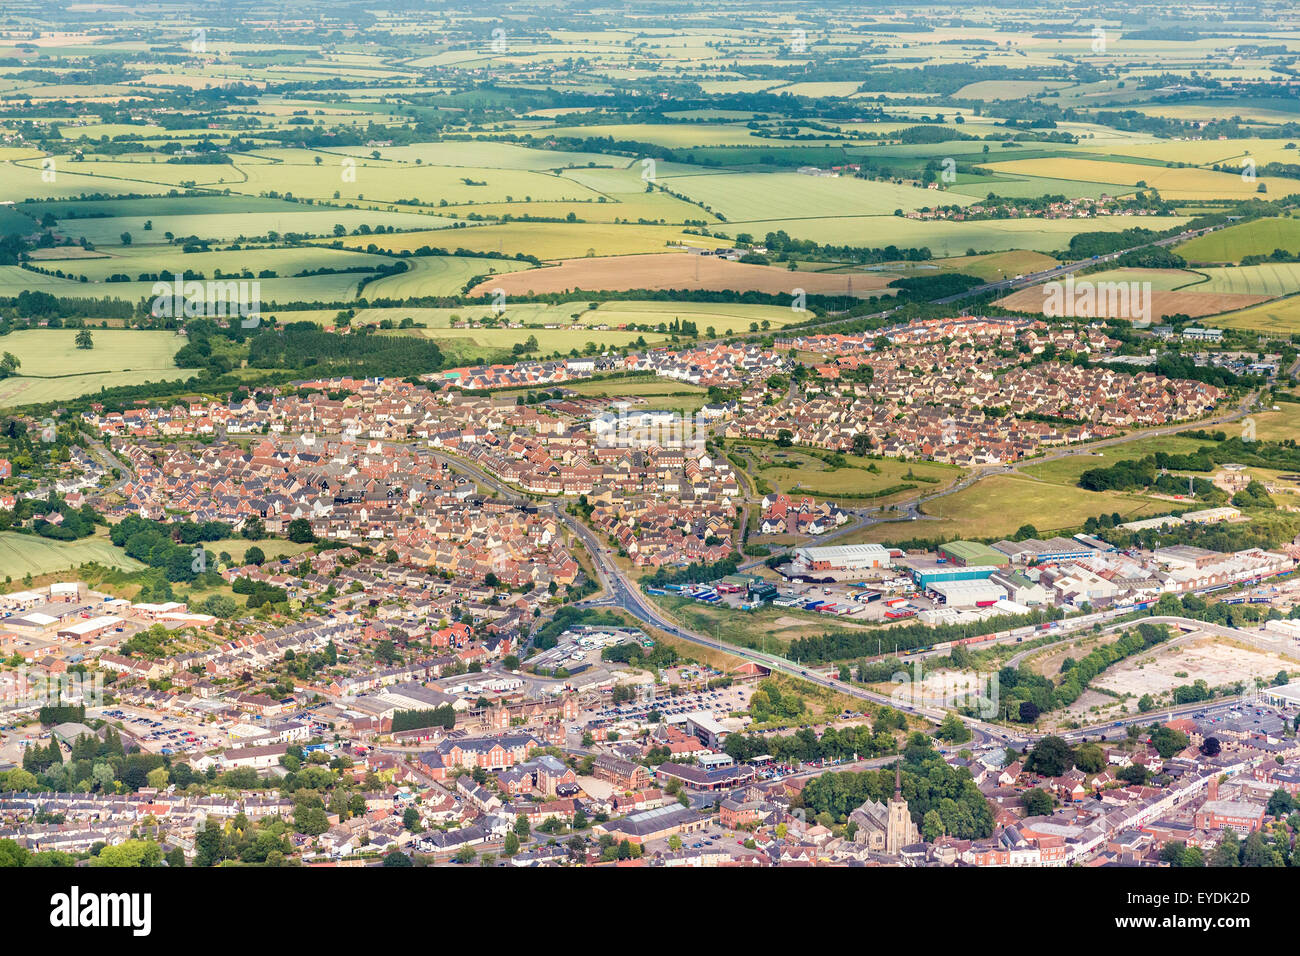 aerial view of the Cedars Park housing estate in Stowmarket, Suffolk, UK - Stock Image